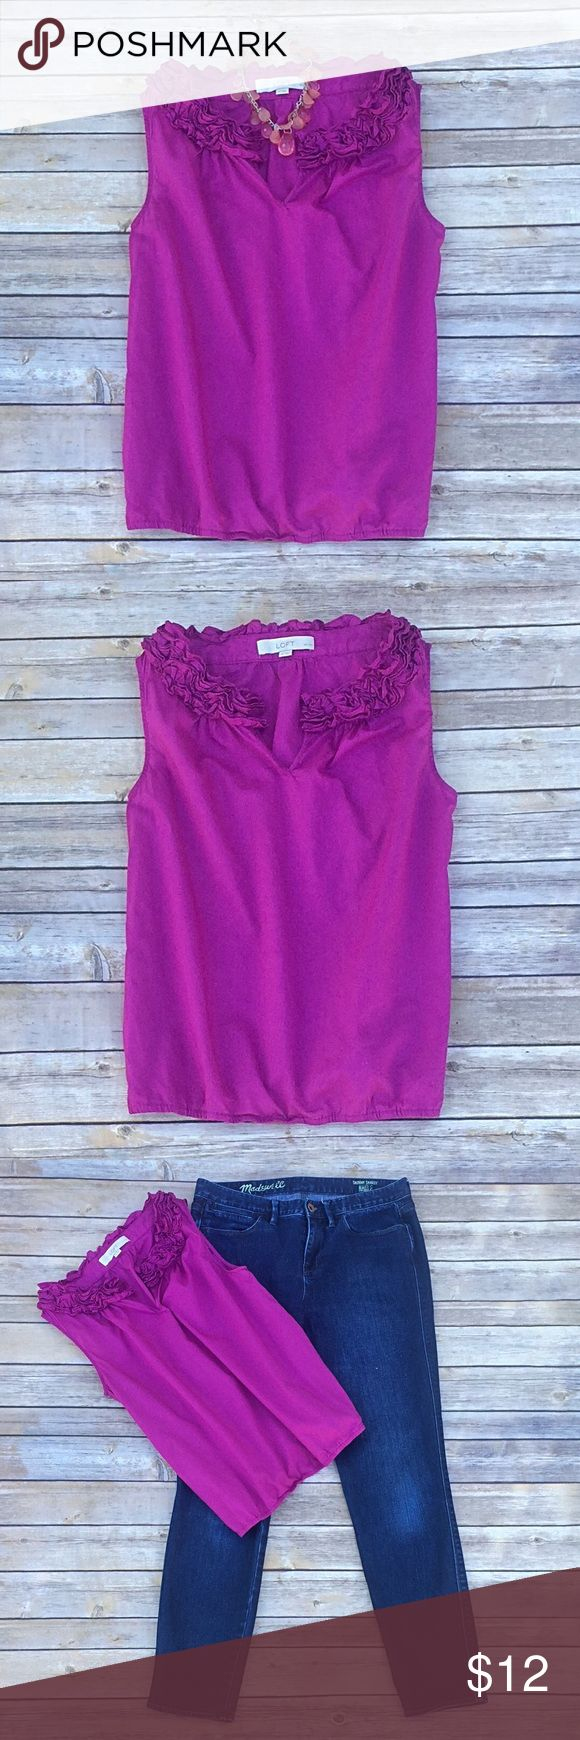 """Pretty bright pink/purple blouse from LOFT Super cute top from LOFT in a bright pinkish purple.  Sleeveless with fabric """"flowers"""" around the neckline.  Bottom hem contains a thin strip of elastic, but isn't super tight.  I think it's mainly there to add shape and a blousy effect.  100% cotton.  Good condition - one teeny tiny loose thread in the material at the bottom in the front (hard to even see).  Size SP (small petite) - see picture for exact measurements. LOFT Tops Blouses"""